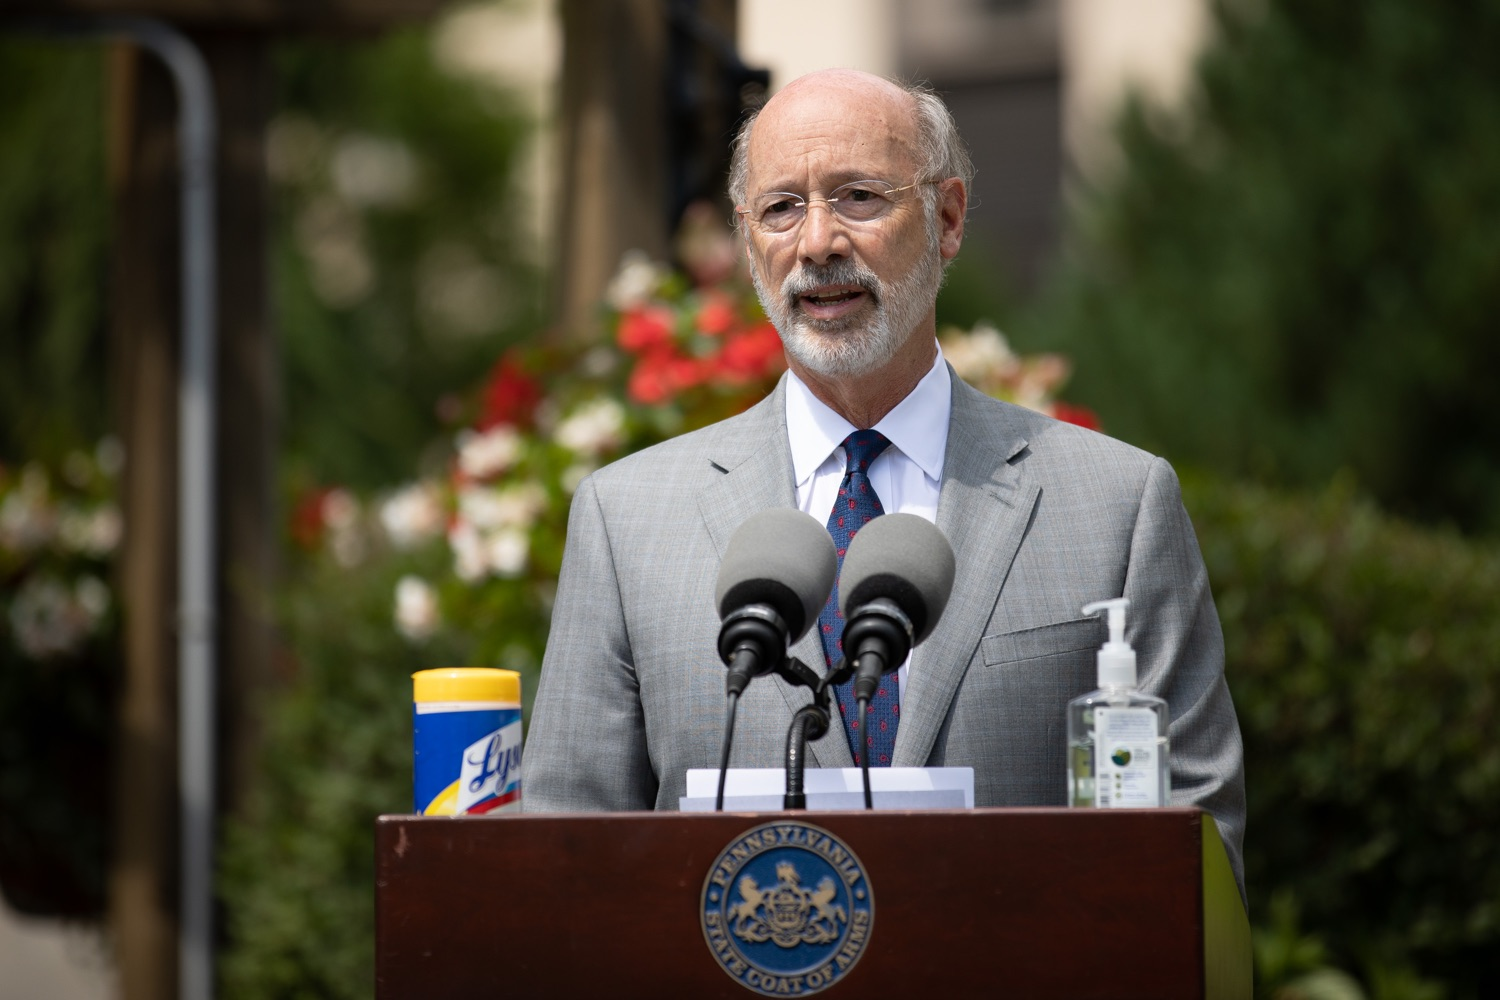 "<a href=""https://filesource.wostreaming.net/commonwealthofpa/photo/18093_gov-healthcare_workers_dz_15.jpg"" target=""_blank"">⇣ Download Photo<br></a>Pennsylvania Governor Tom Wolf speaking during his visit to Milton S. Hershey Medical Center. As the commonwealth continues its measured, phased reopening and COVID-19 case counts continue to decline, Governor Tom Wolf visited Penn State Milton S. Hershey Medical Center today to thank staff and learn more about how the facility is handling the pandemic and preparing for a possible resurgence in the fall.  Harrisburg, PA  June 24, 2020"